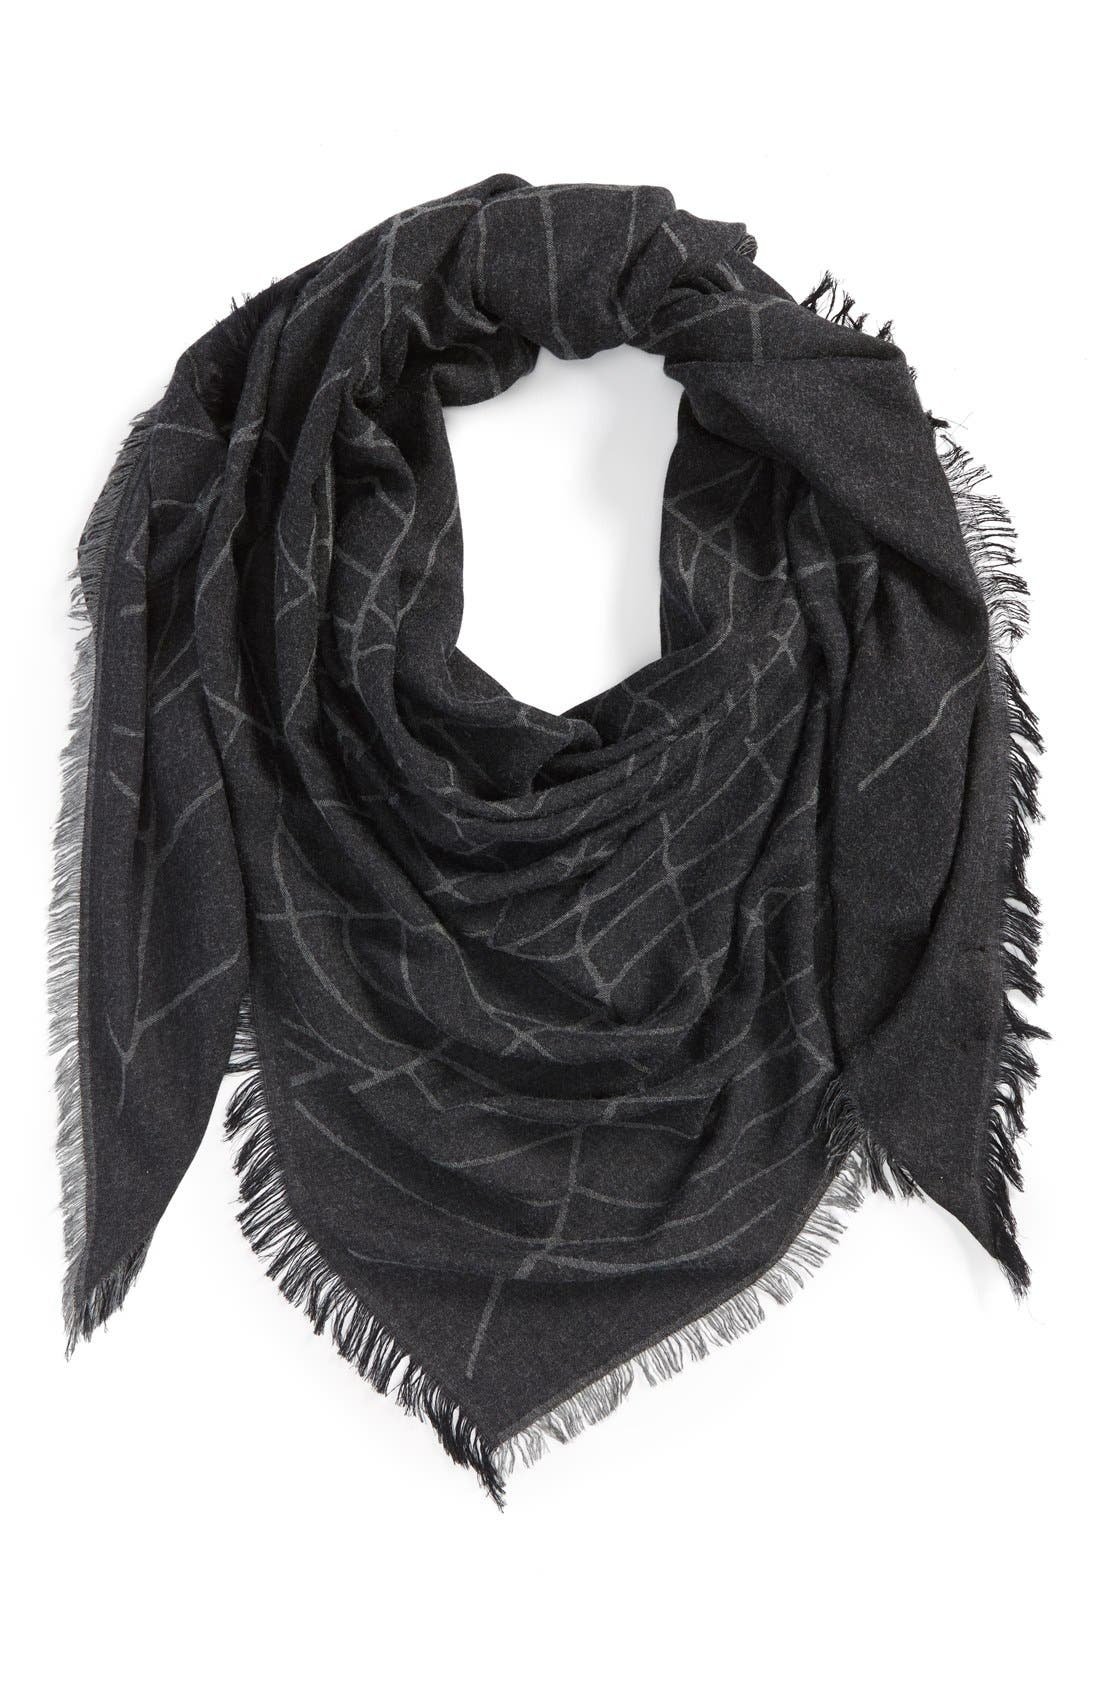 Main Image - The Kooples Spider Web Print Triangle Scarf